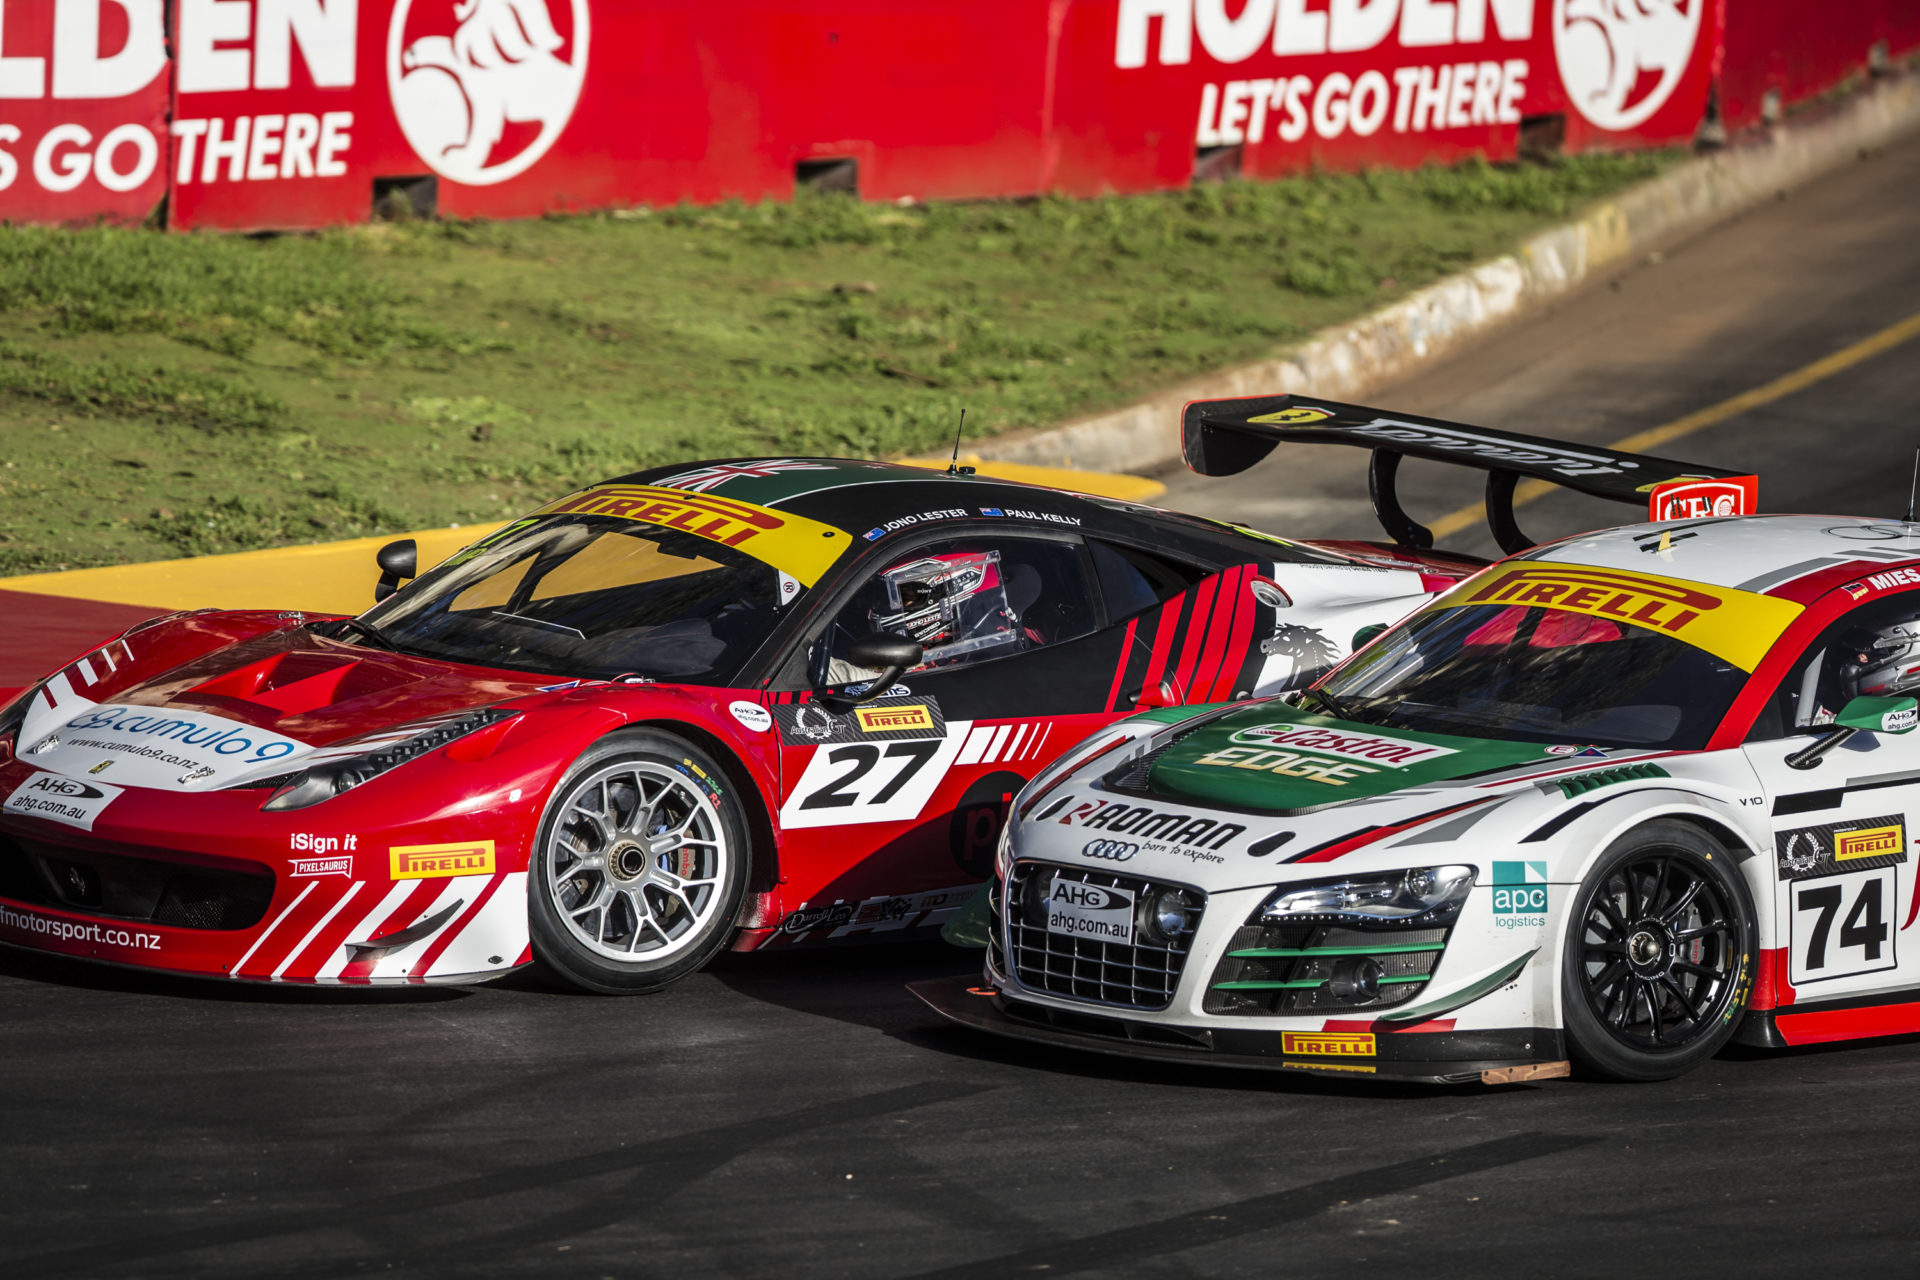 Jono Lester and Chris Mies battle at the Clipsal 500 2015